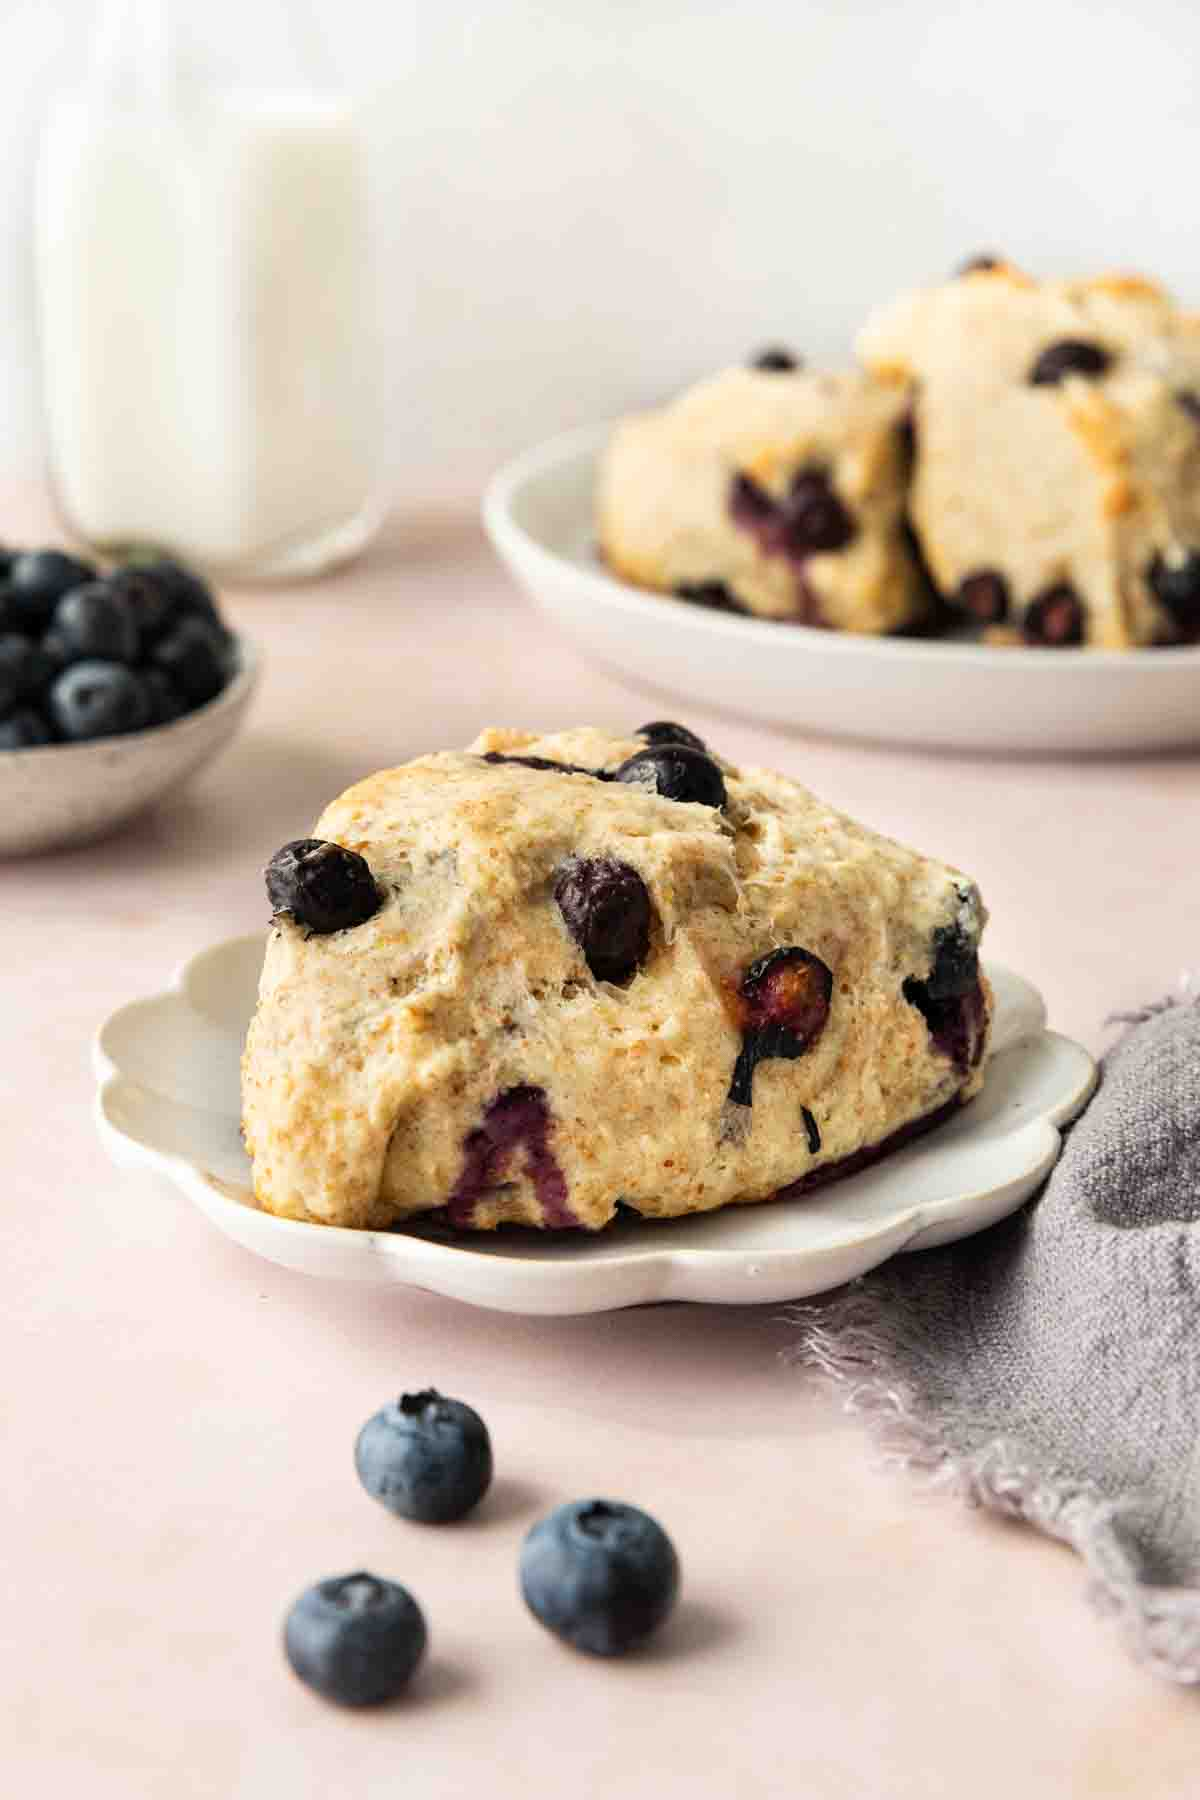 Blueberry Scone on plate